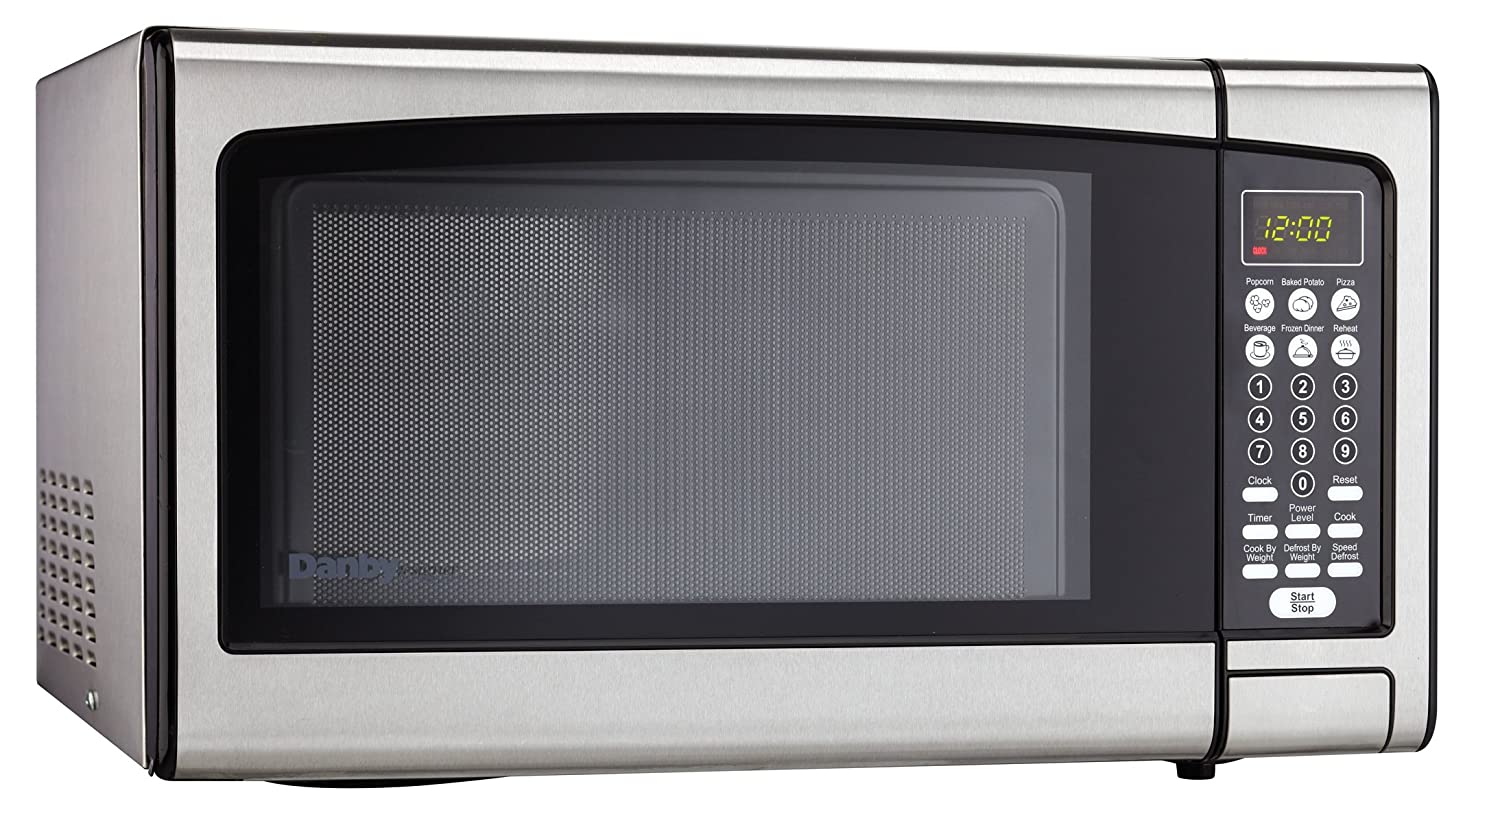 Amazon.com: Danby Designer 1.1 cu.ft. Countertop Microwave, Stainless  Steel: Appliances